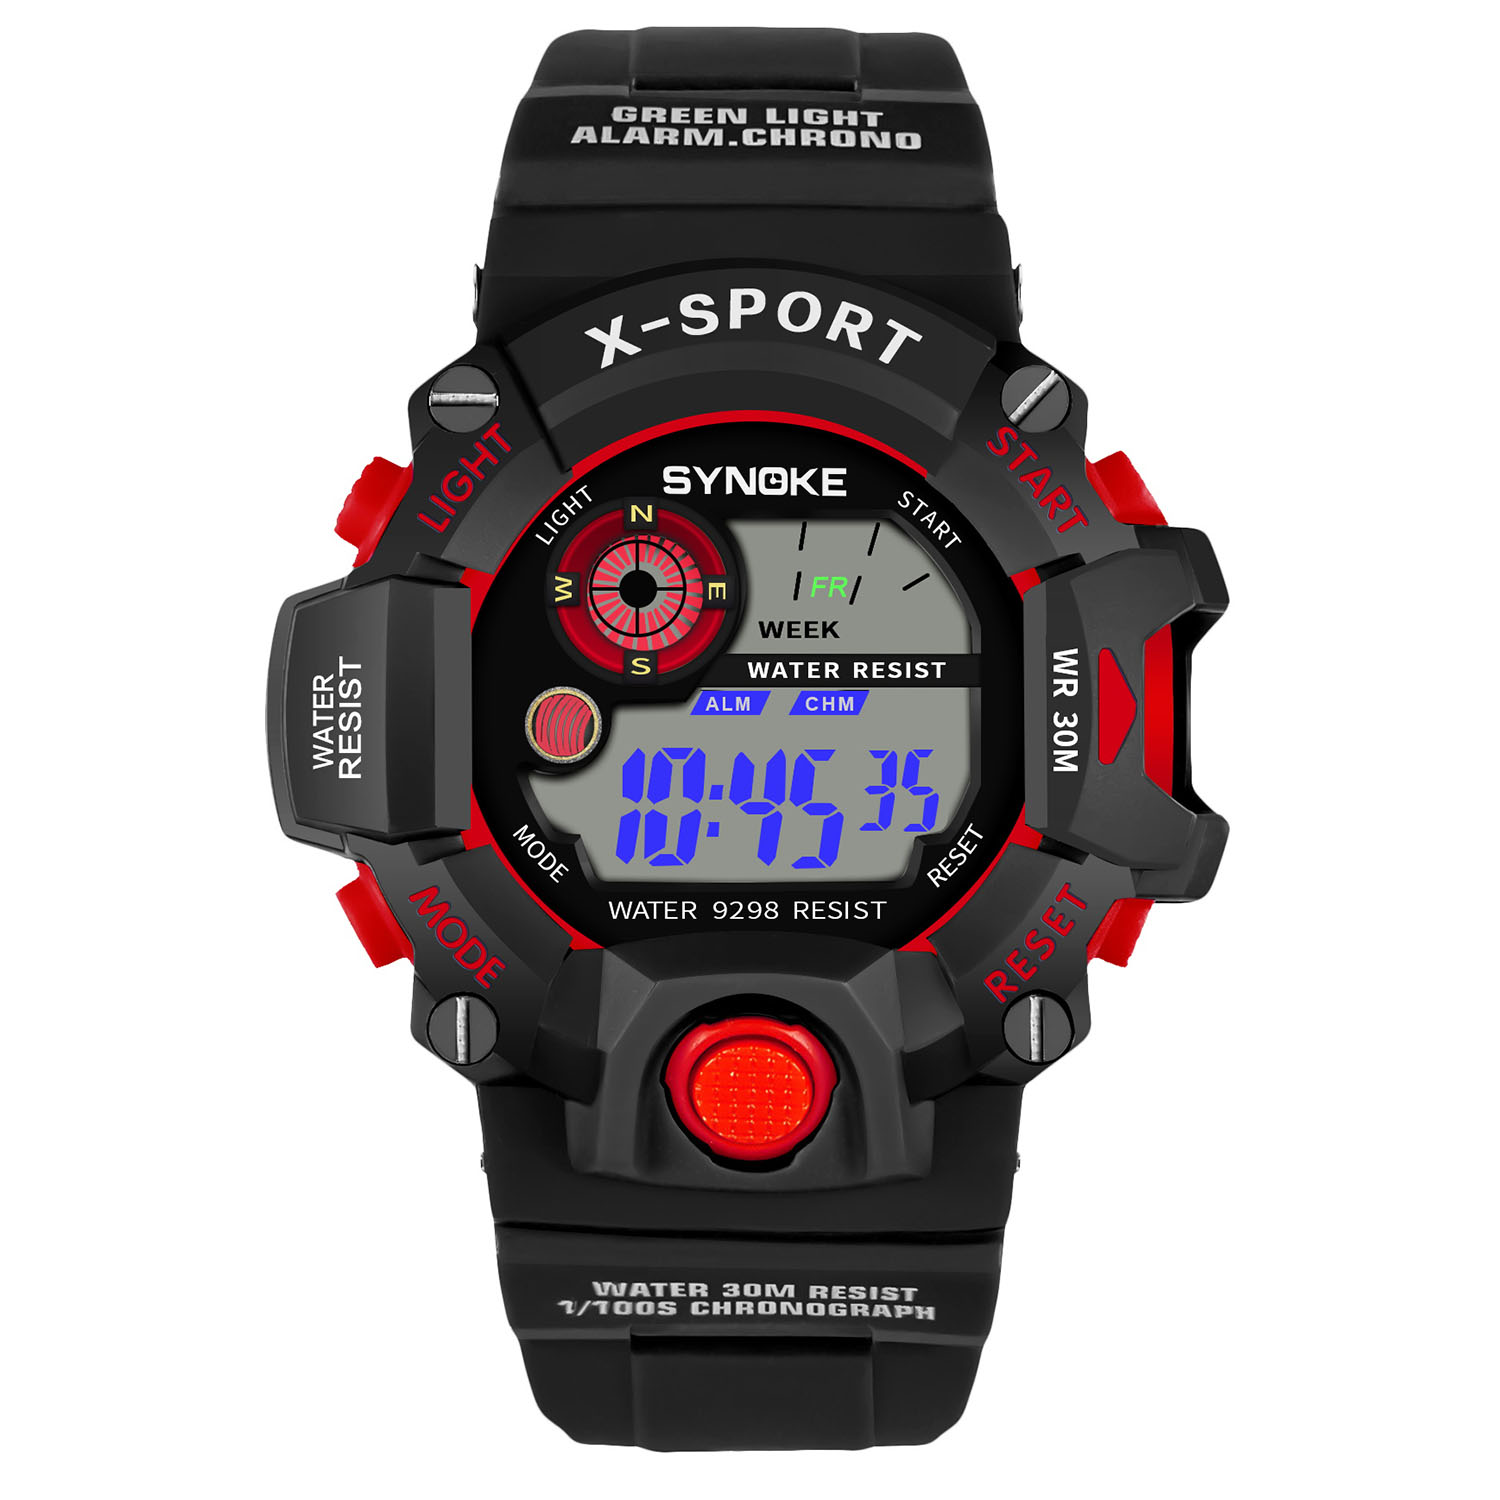 New 2019 G Watch Men Shock Sports Watches LED Wristwatches Waterproof Alarm Men's Sports Watches Digital Military Watches(China)